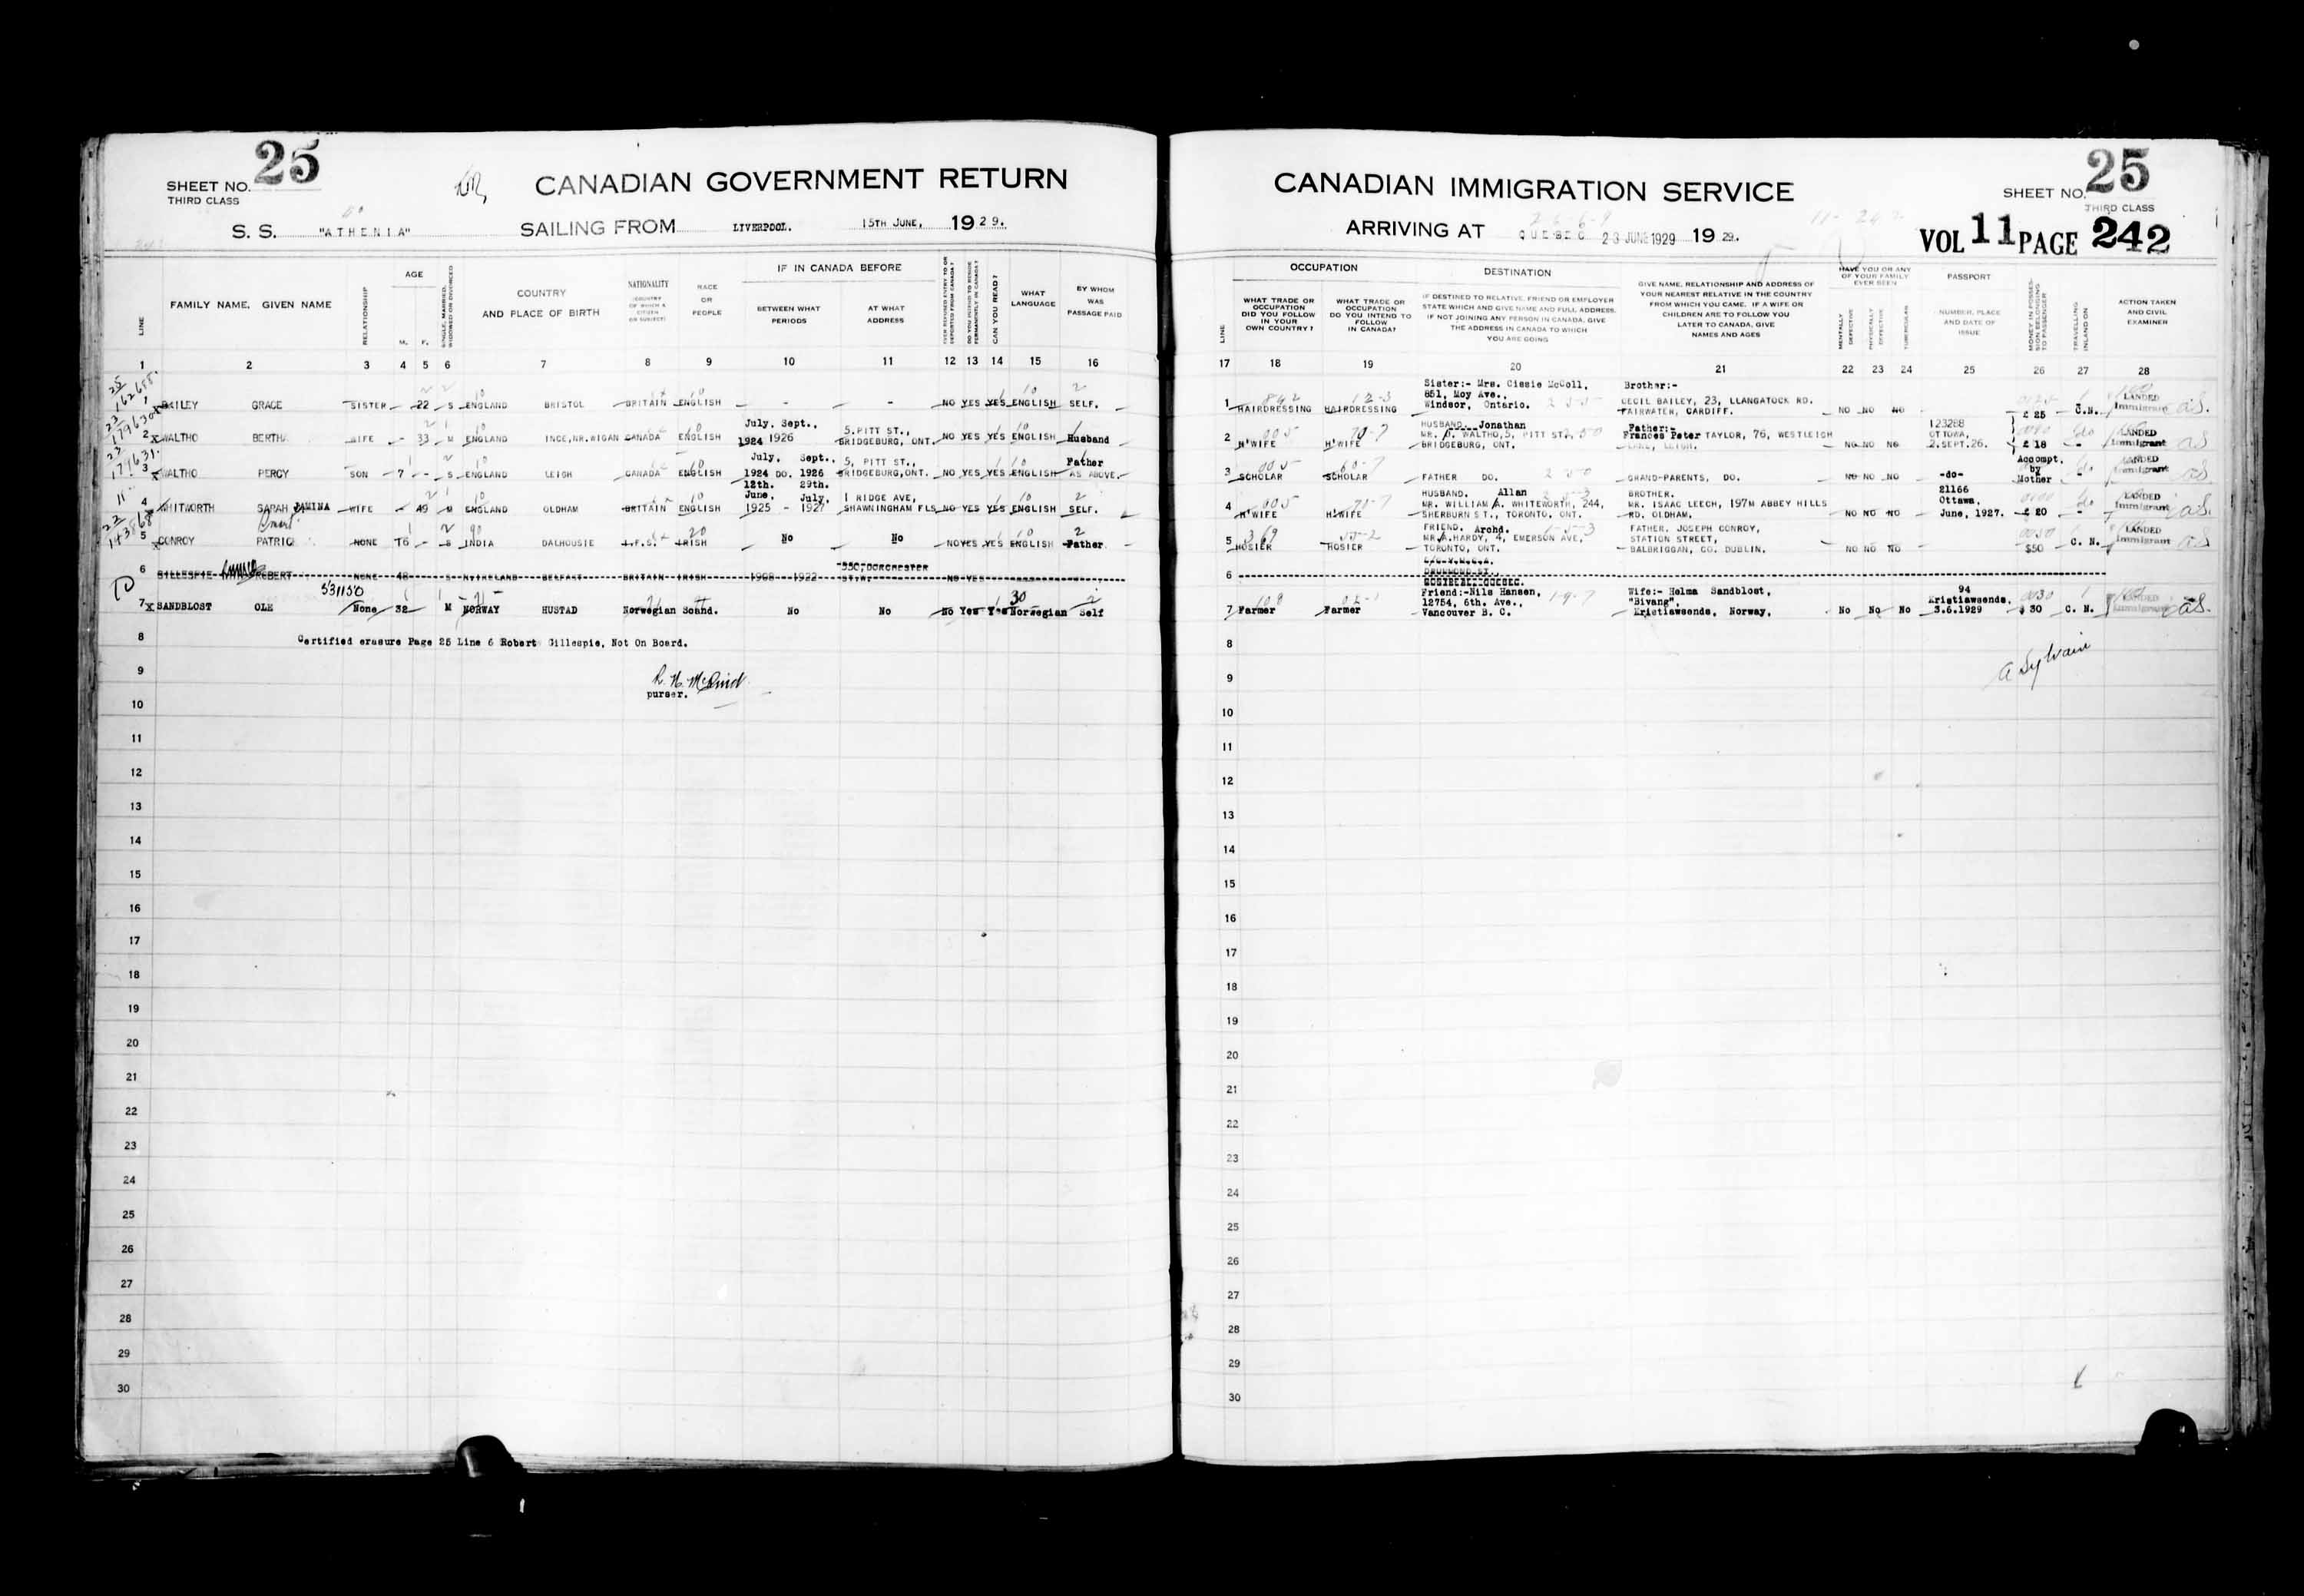 Title: Passenger Lists: Quebec City (1925-1935) - Mikan Number: 134839 - Microform: t-14754